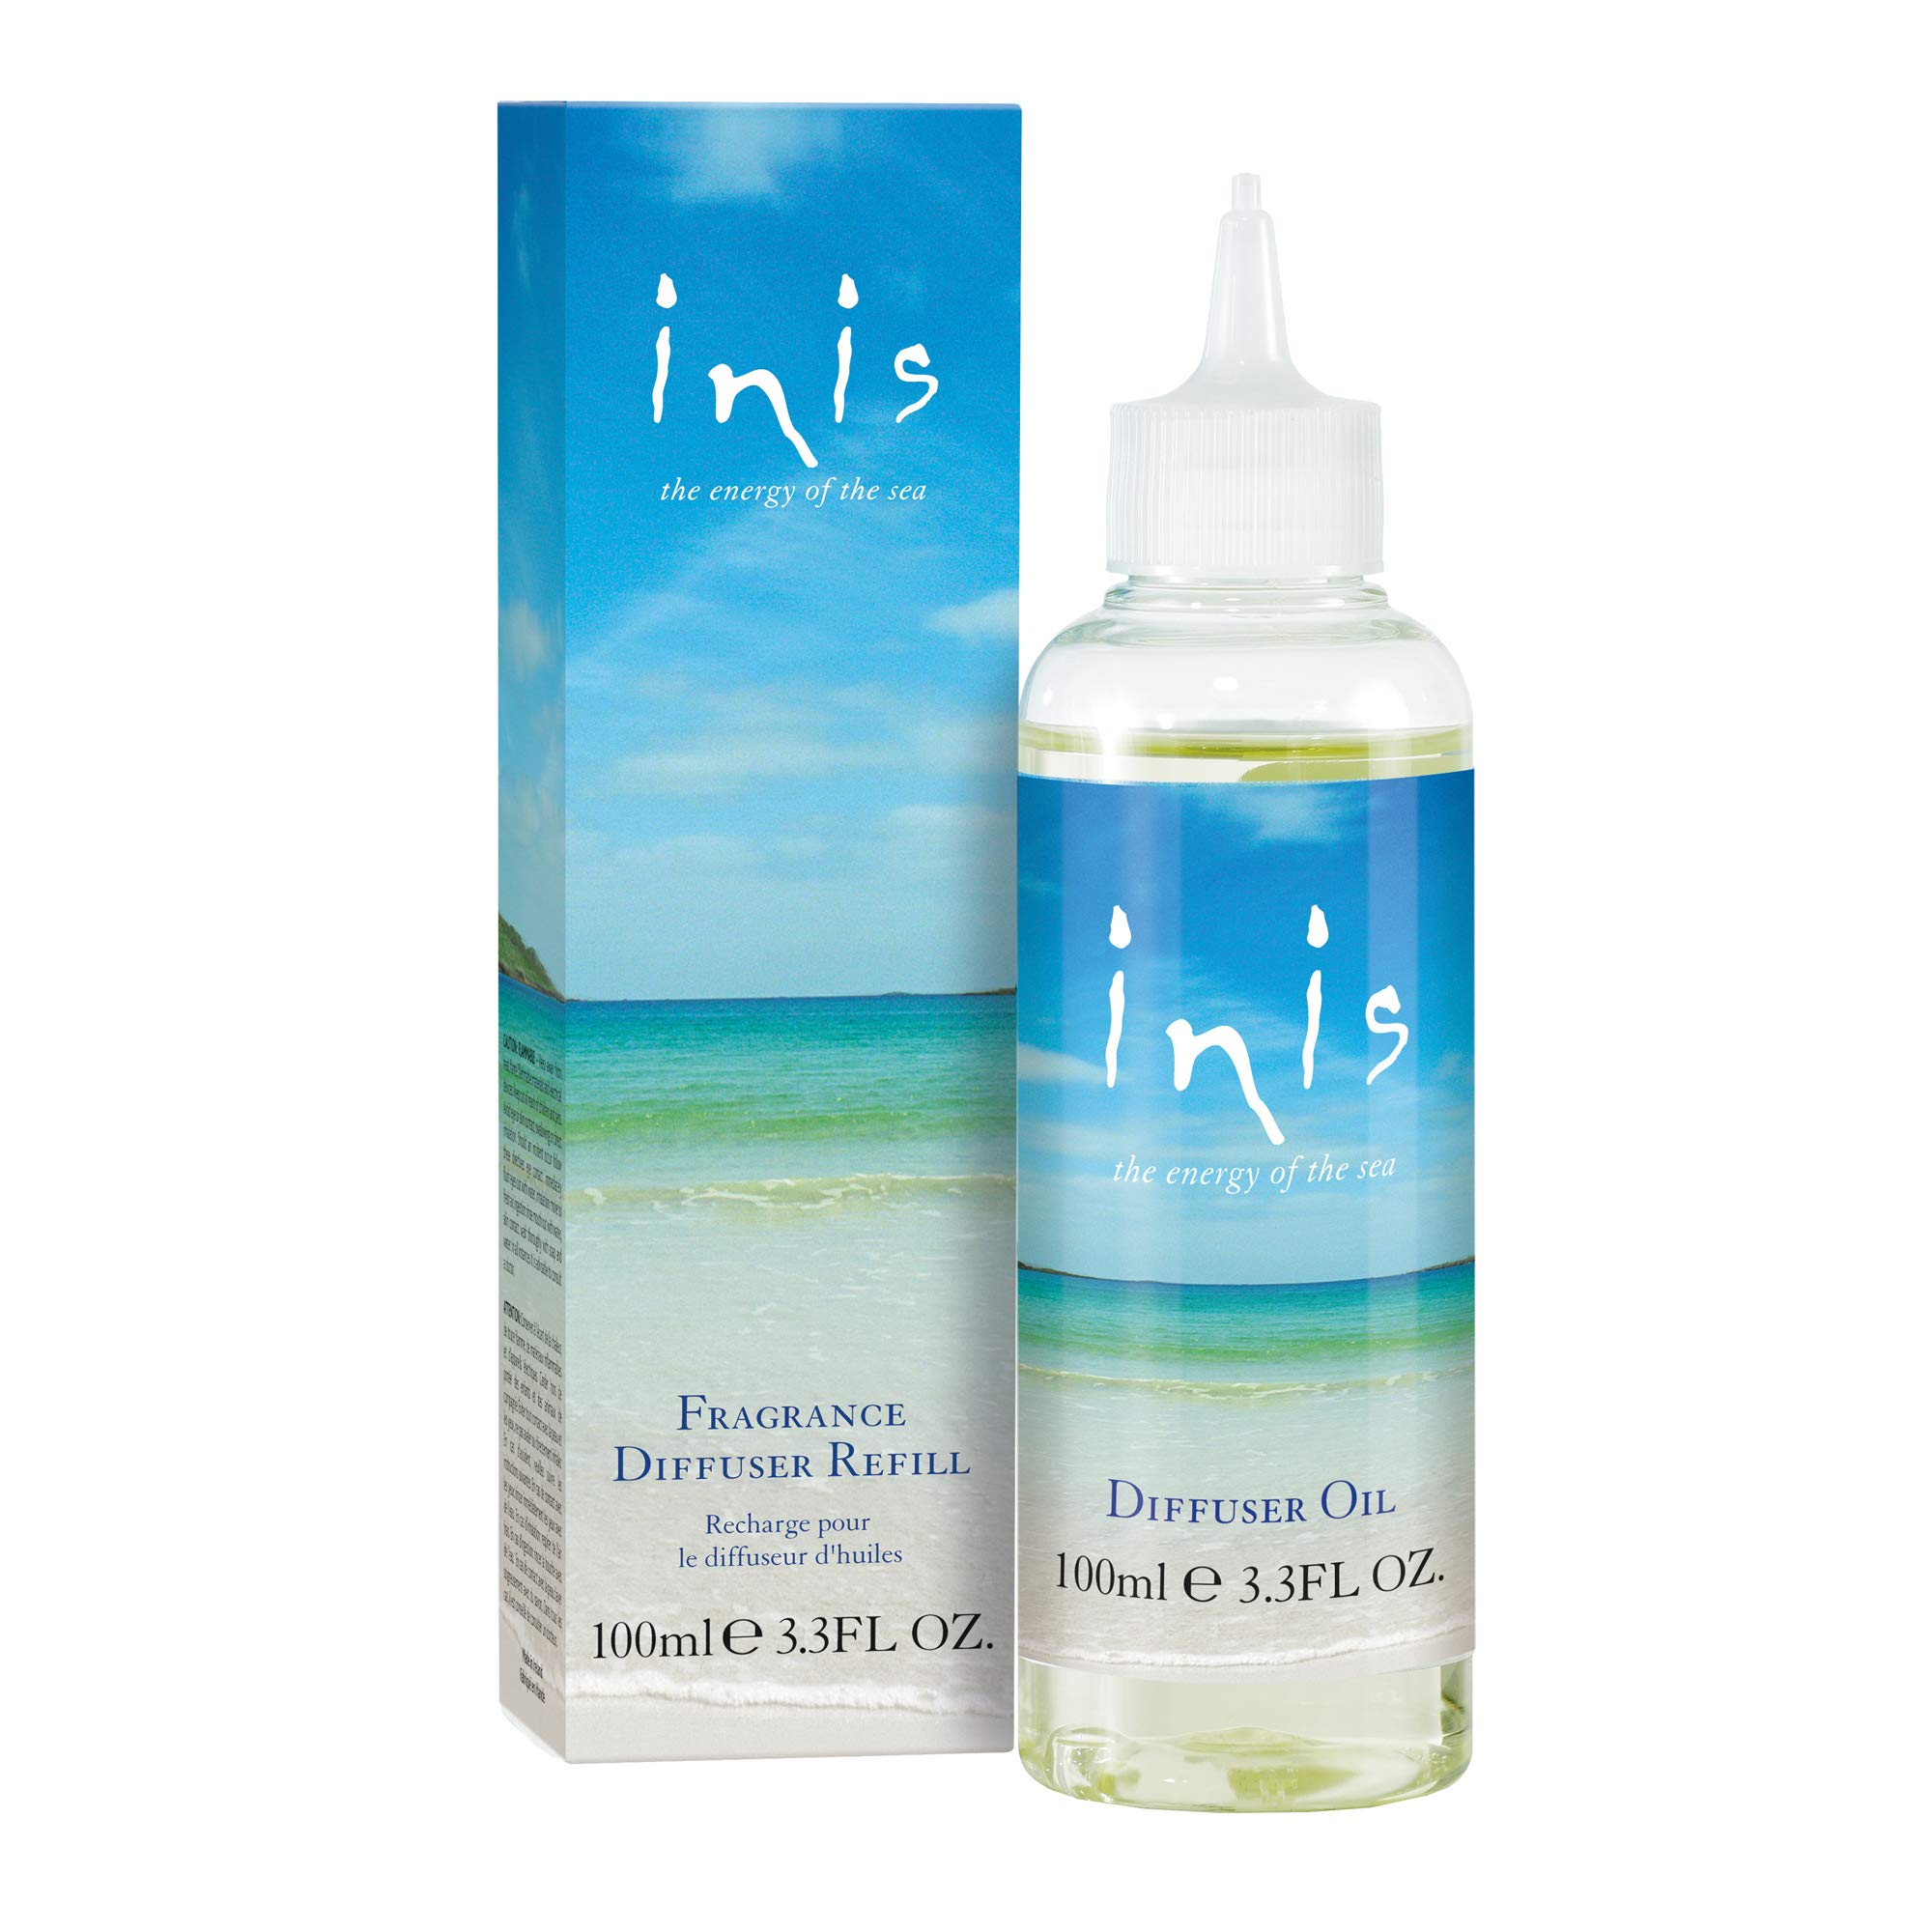 Inis the Energy of the Sea Diffuser Refill, 3.3 Fluid Ounce